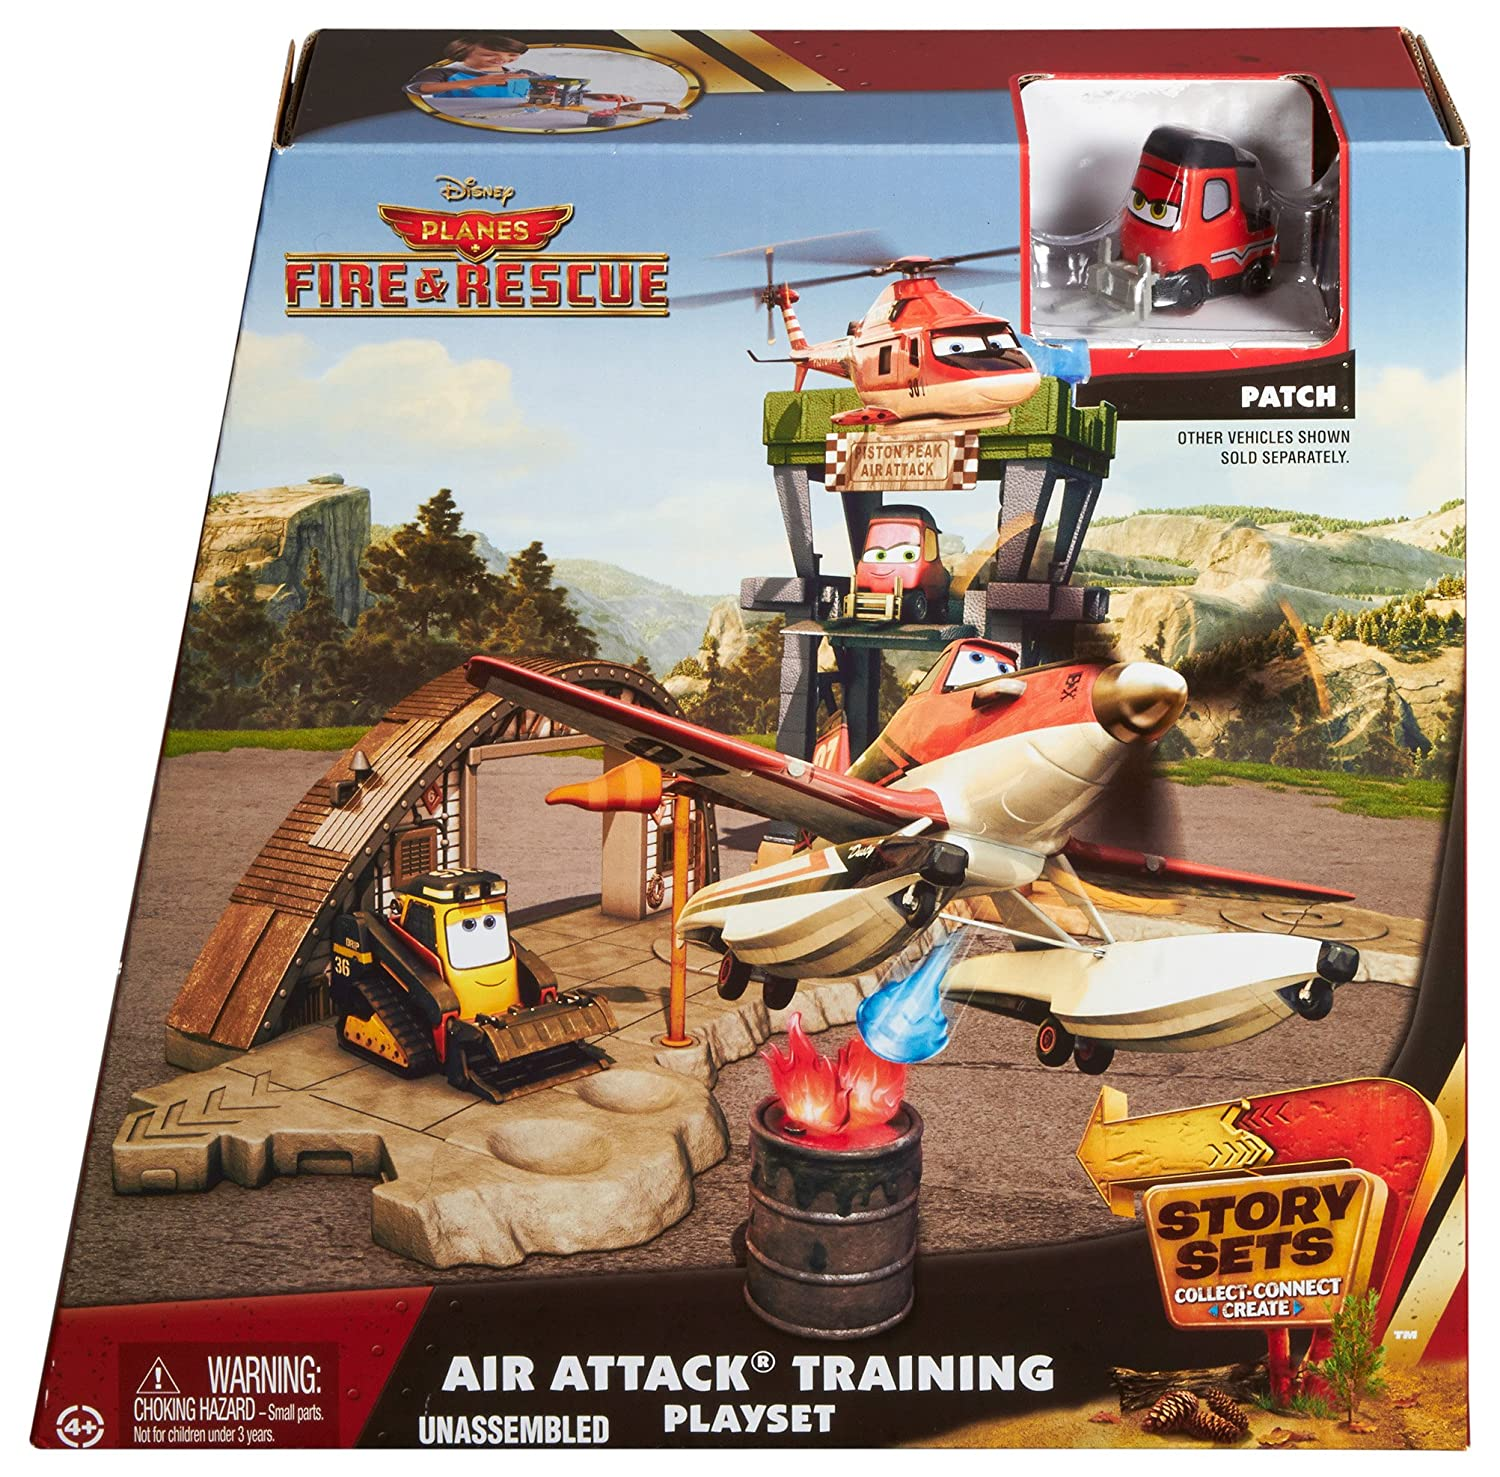 Amazon.com: Mattel Disney Planes: Fire & Rescue Story Playset 1 ...